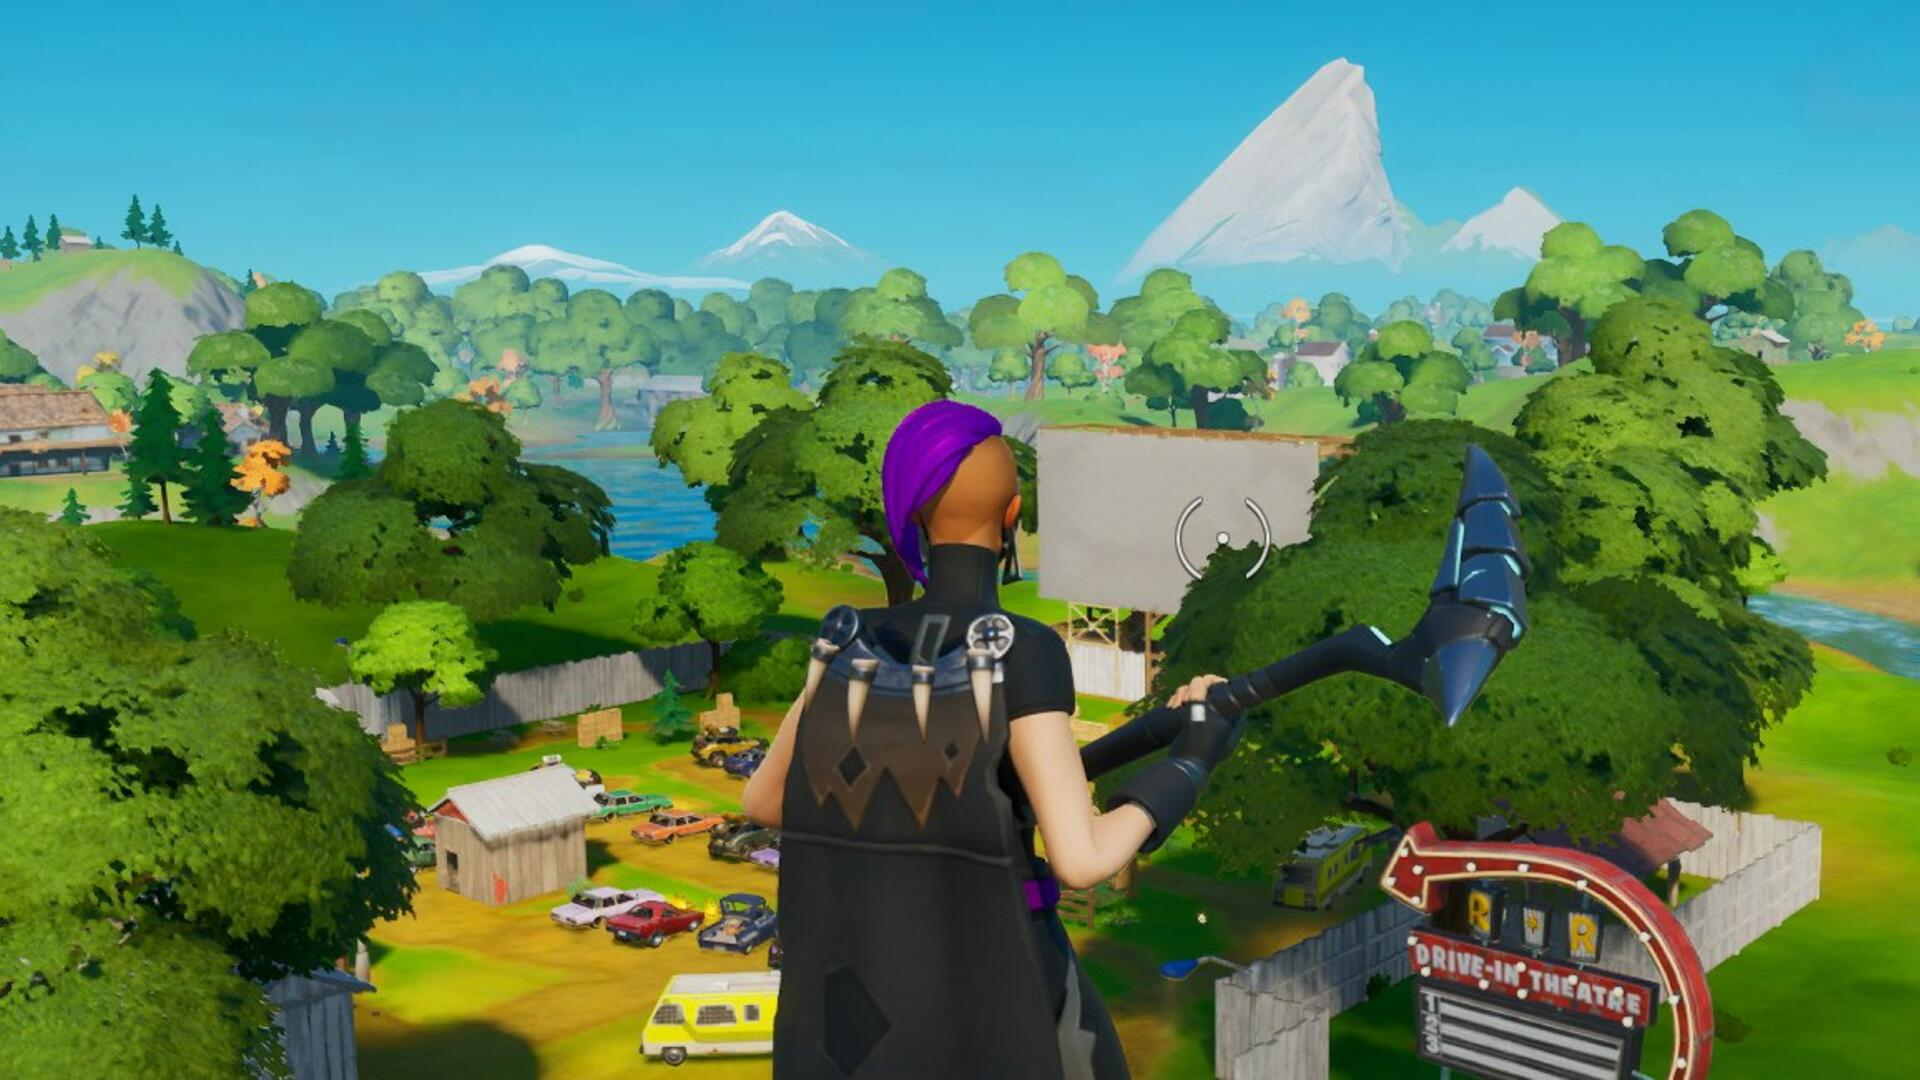 Fortnite 2 Map All Named Locations And Landmarks On The